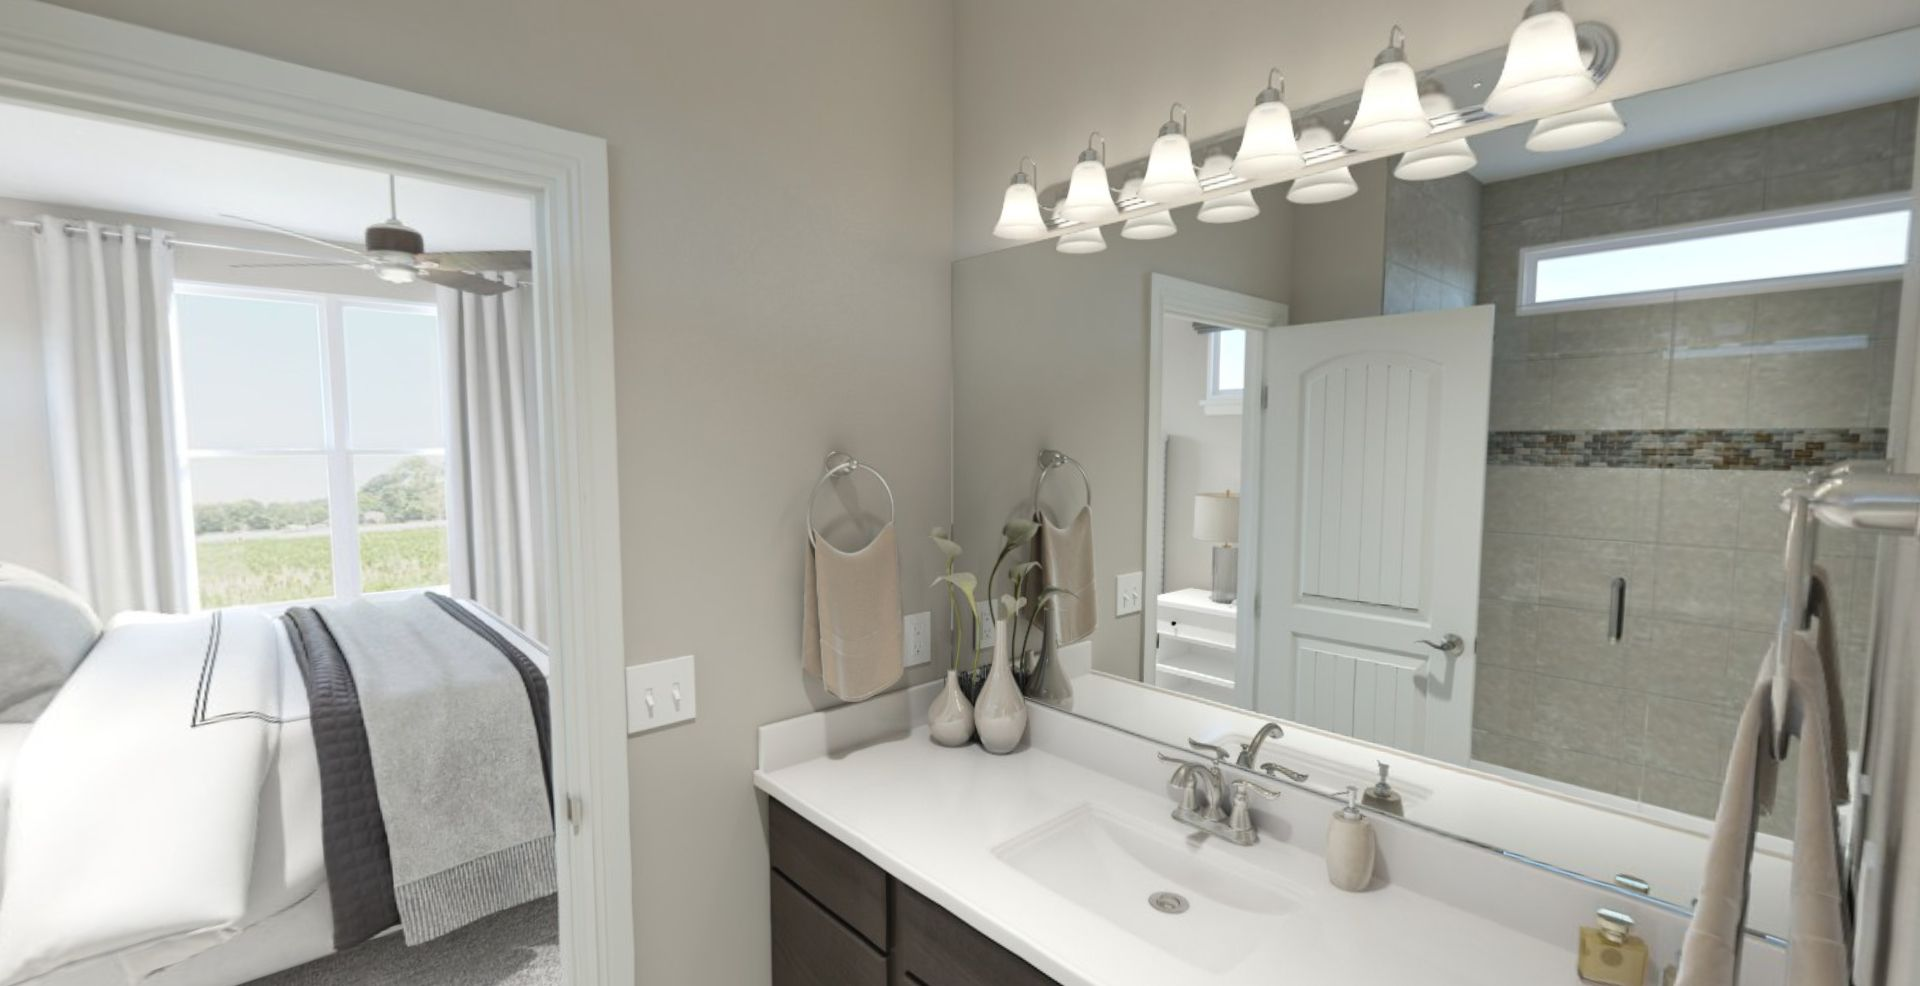 Bathroom featured in the Sonata By Olthof Homes in Indianapolis, IN